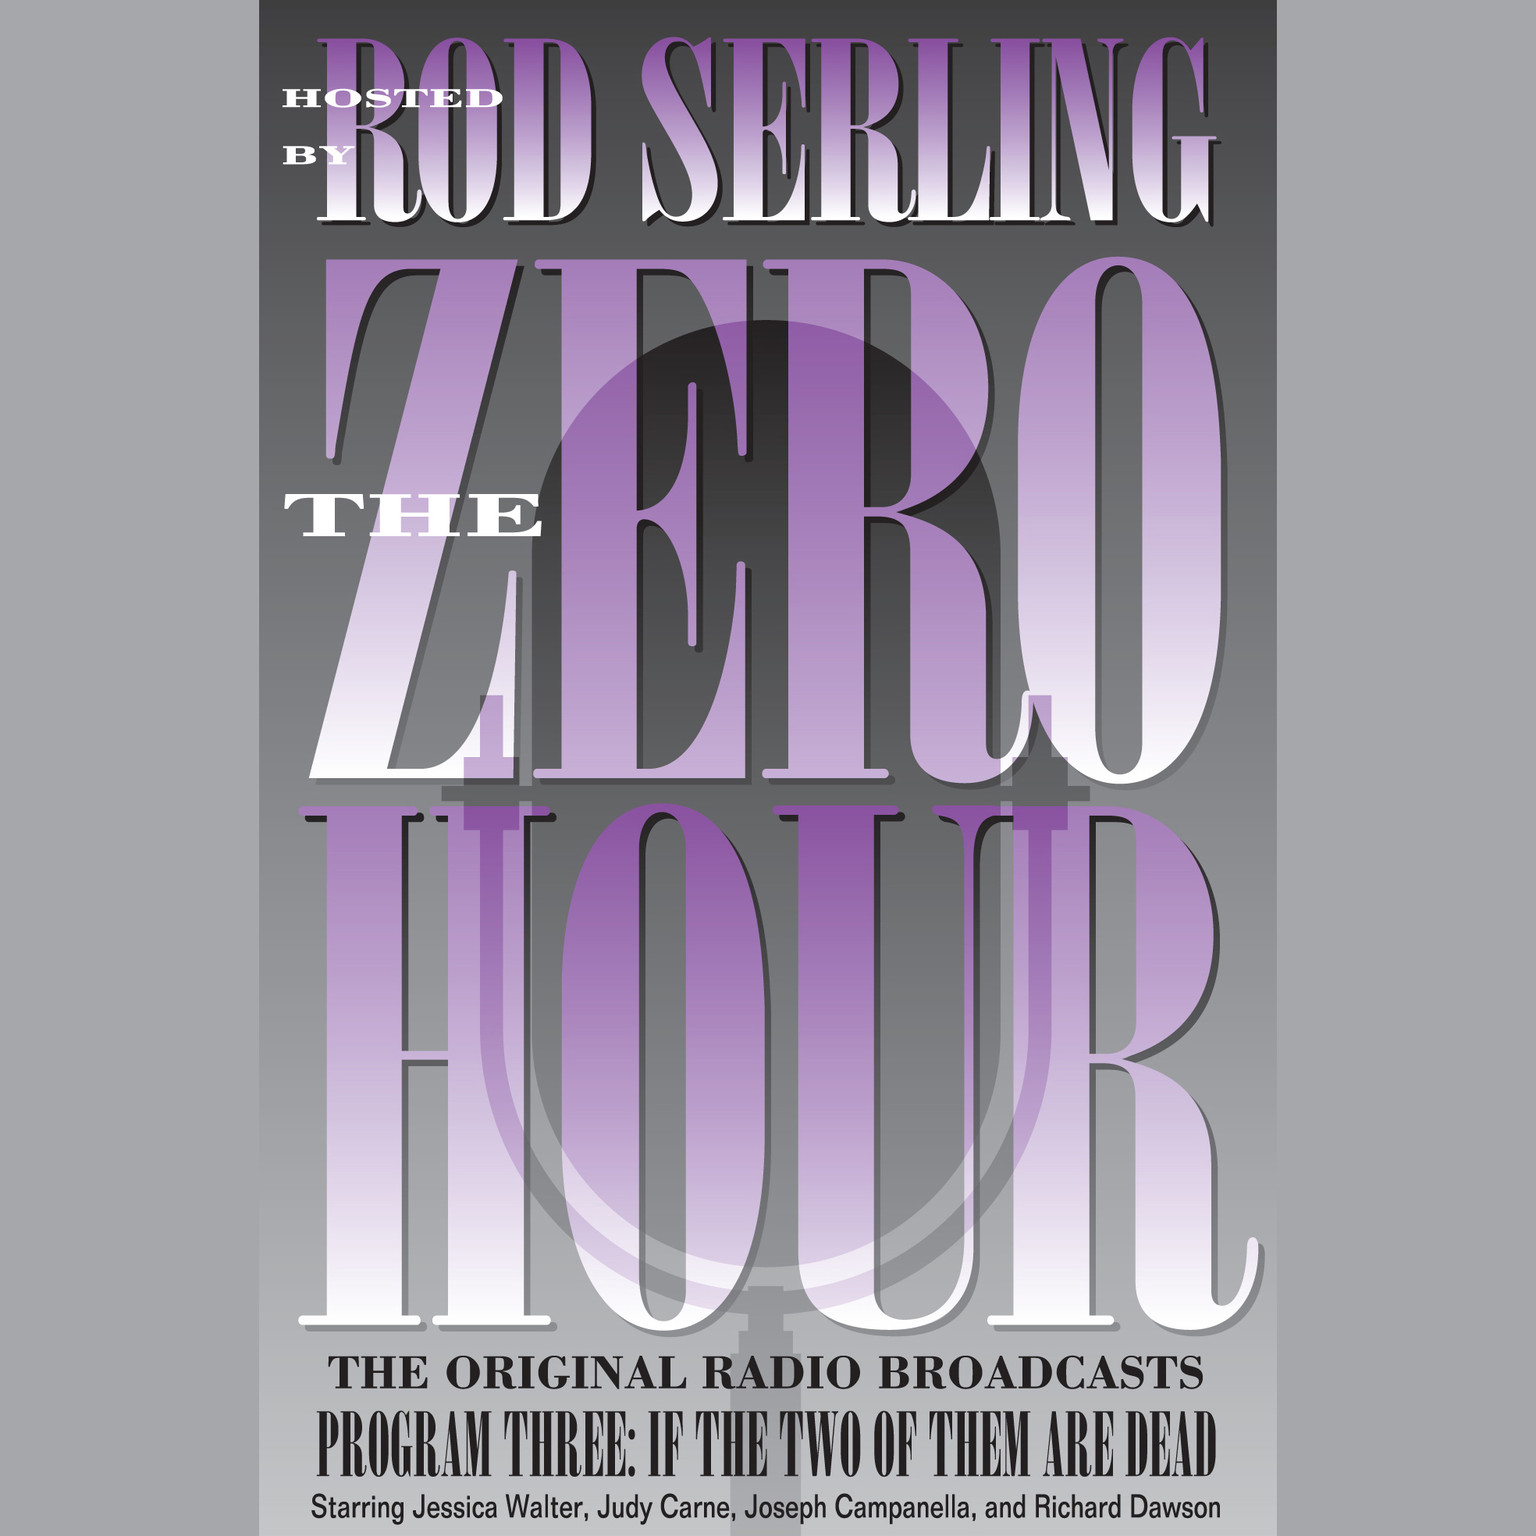 Printable Zero Hour, Program Three: If the Two of Them Are Dead Audiobook Cover Art